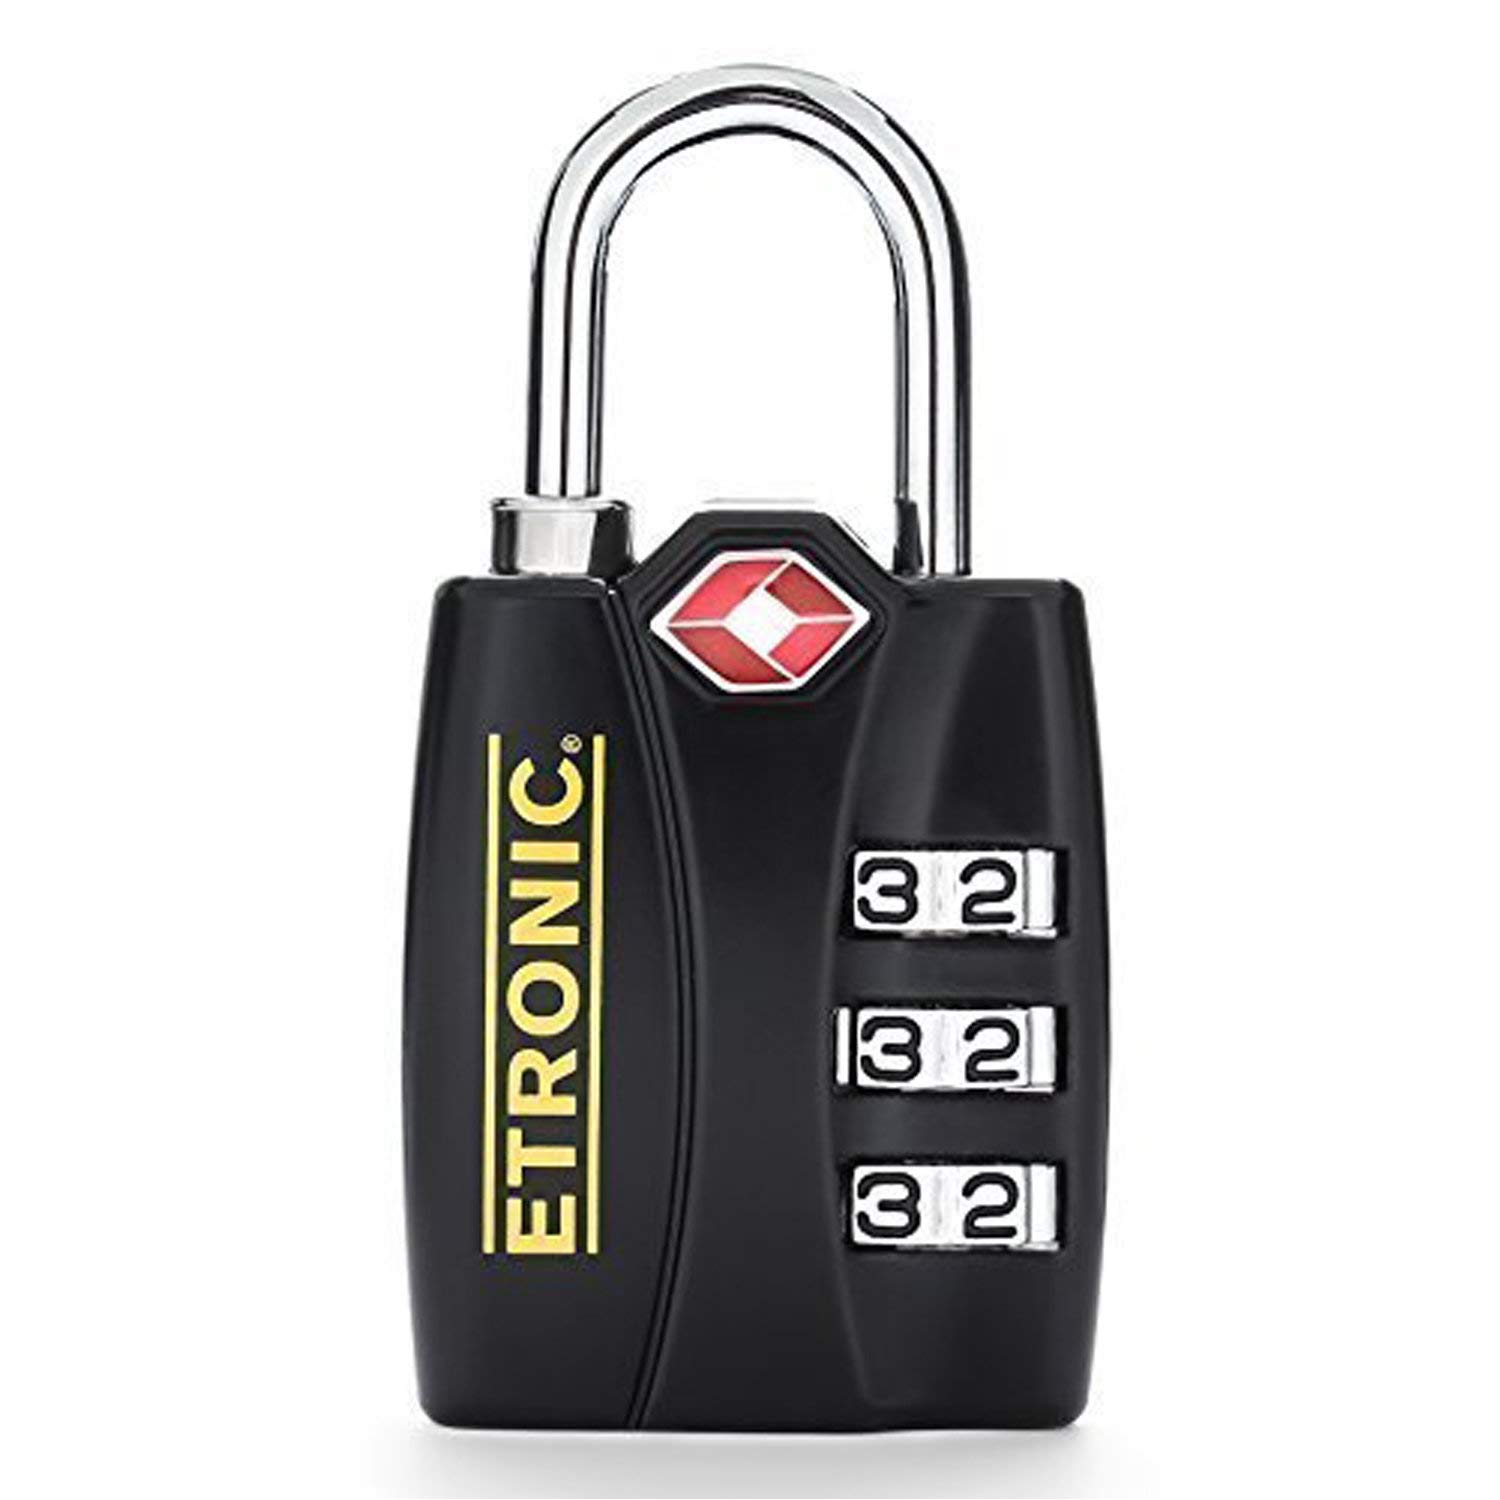 ETRONIC T6 TSA-Approved Lock TSA Open Alert Indicator Resettable Combination TSA-Accepted Luggage Lock, 1-3/16in (30mm) Wide (2 Pack)